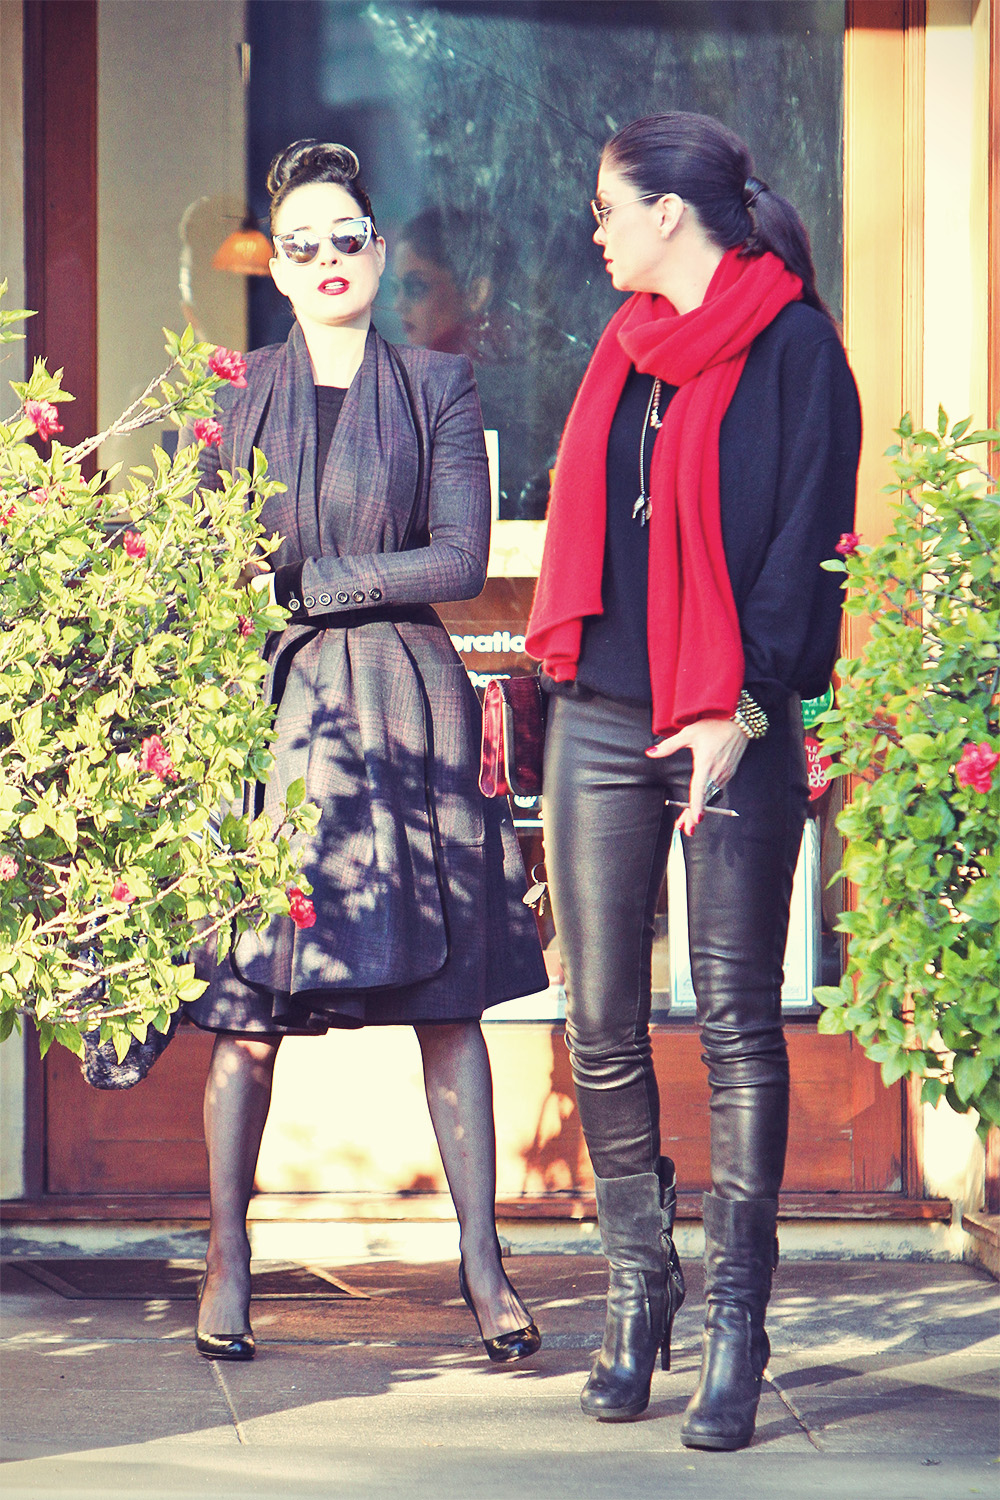 Dita Von Teese Goes for lunch with a friend